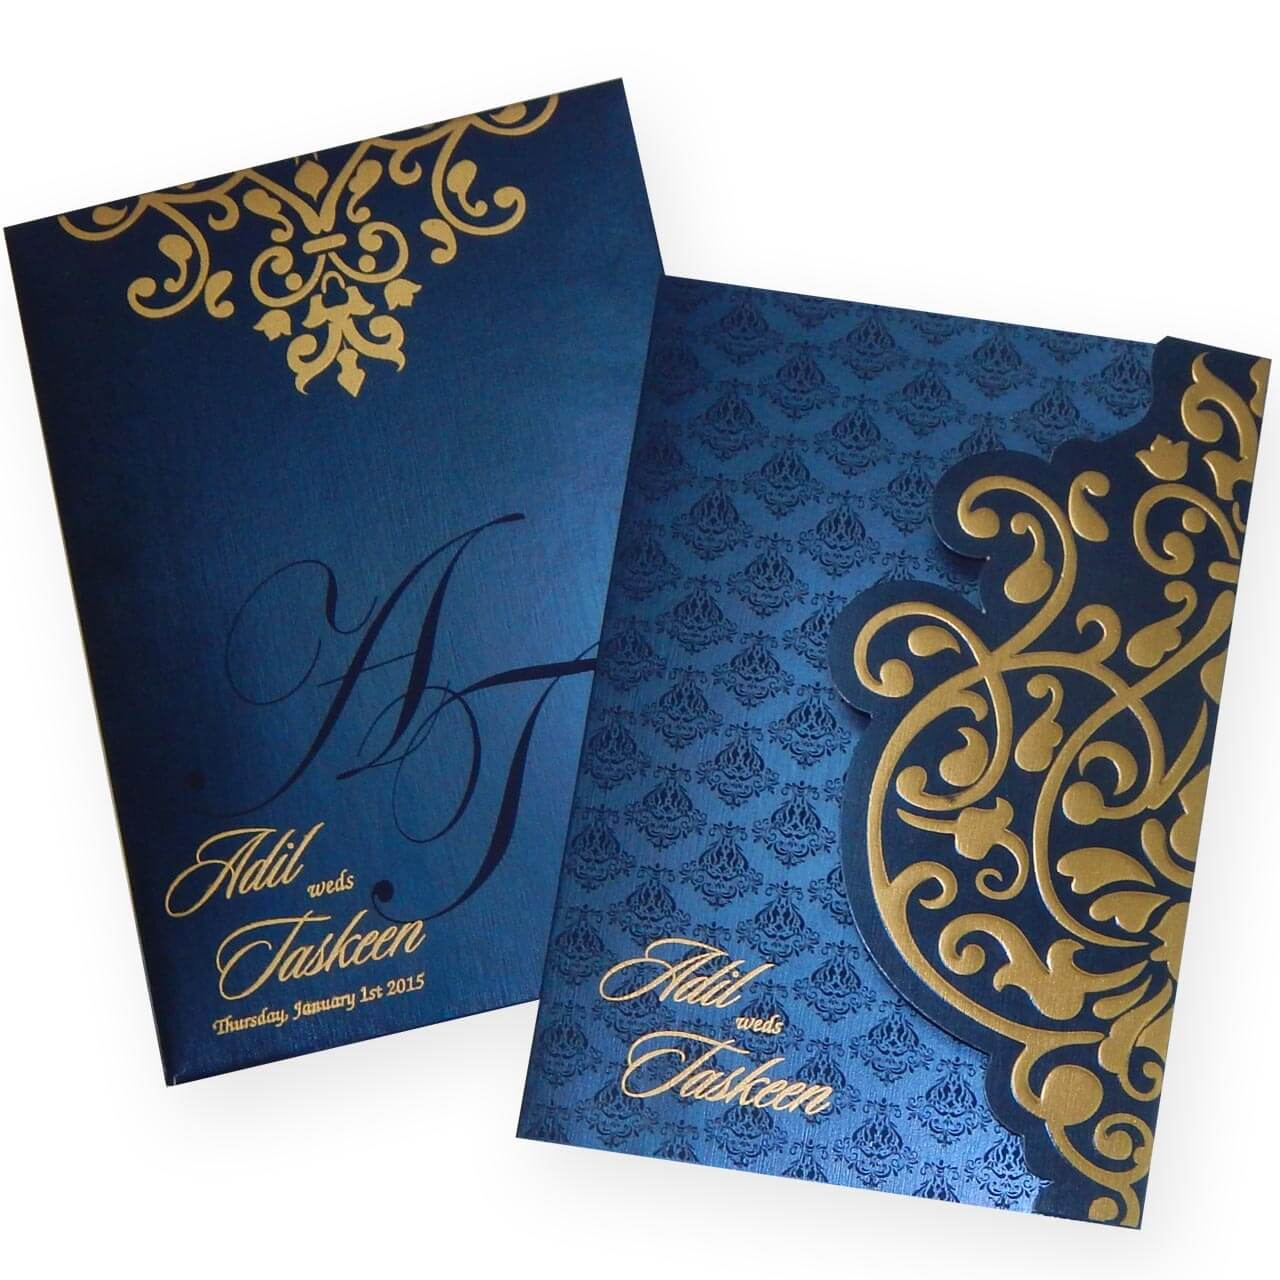 Hindu Wedding: The Wedding Cards Online